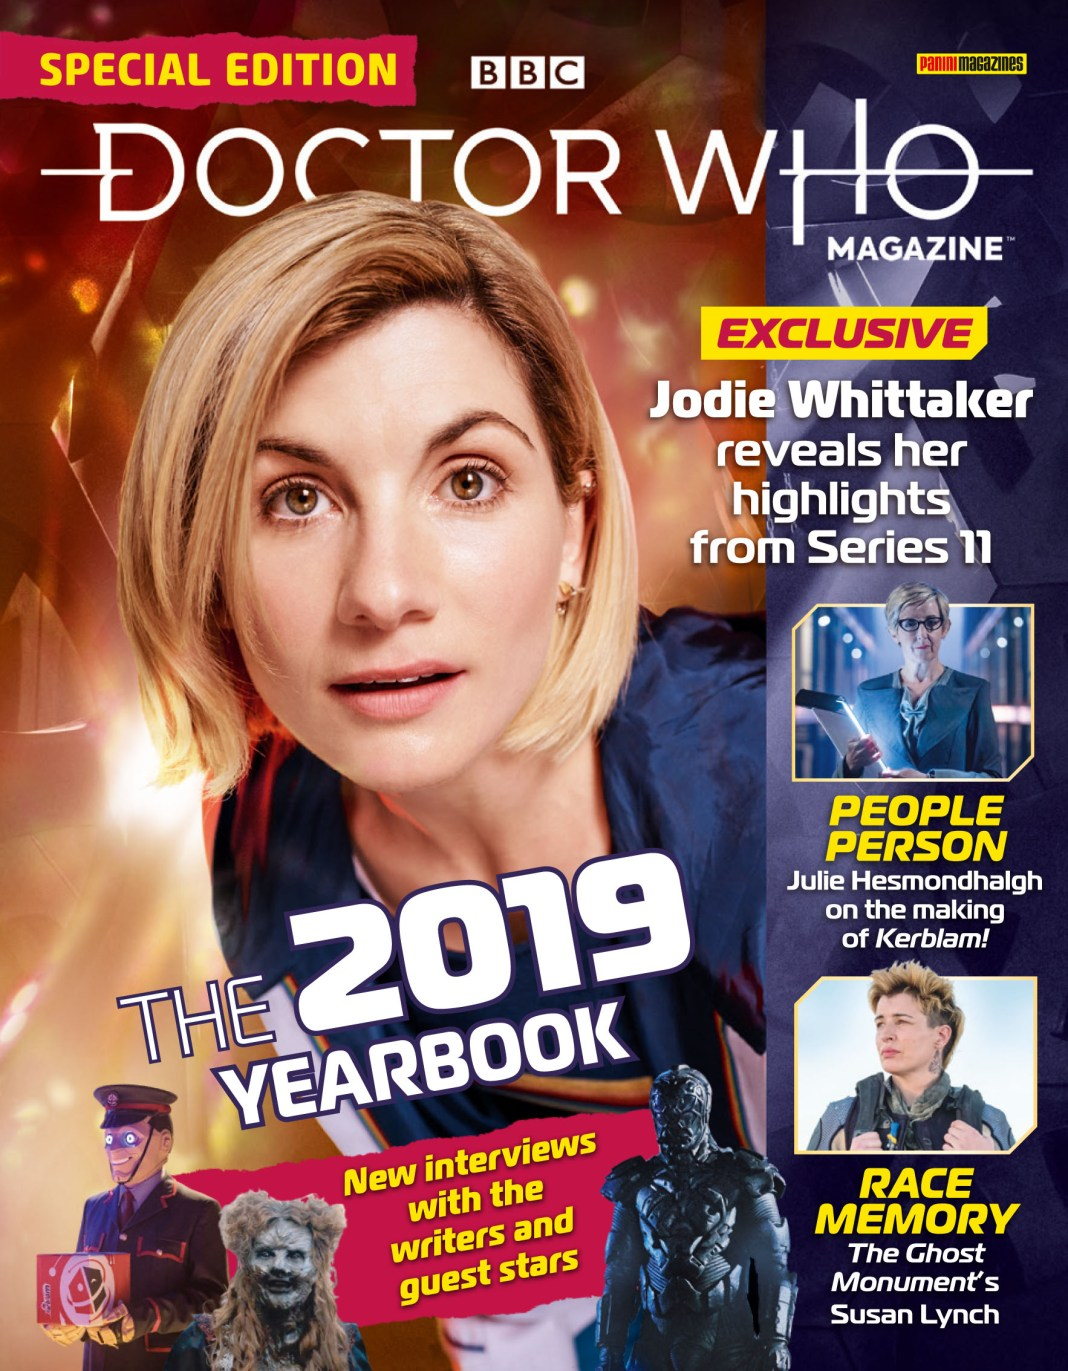 Doctor Who Magazine 2019 Yearbook - Cover